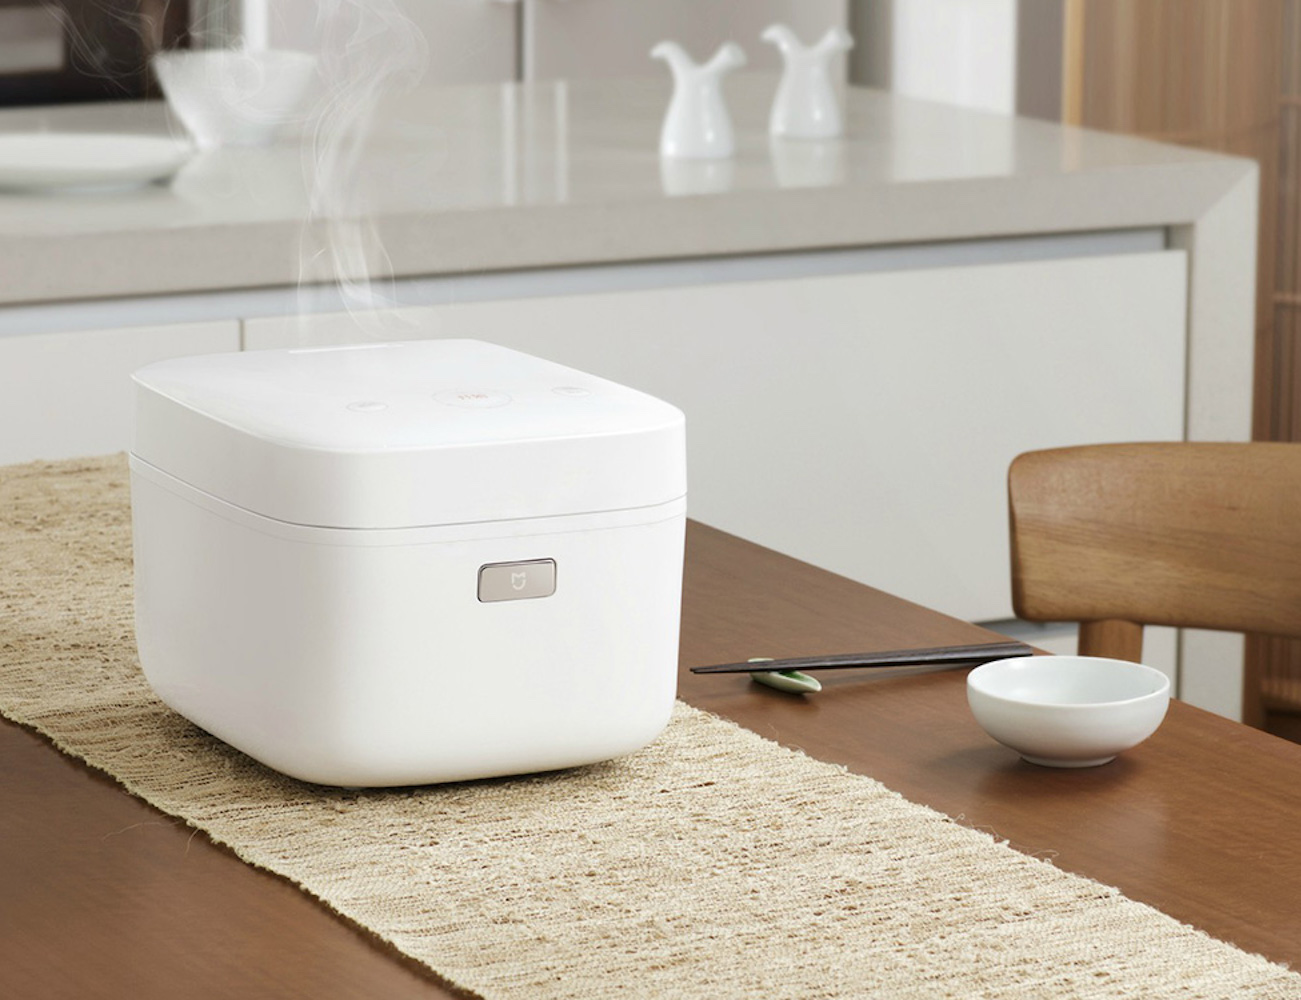 Mi Rice Cooker By Xiaomi 187 Review